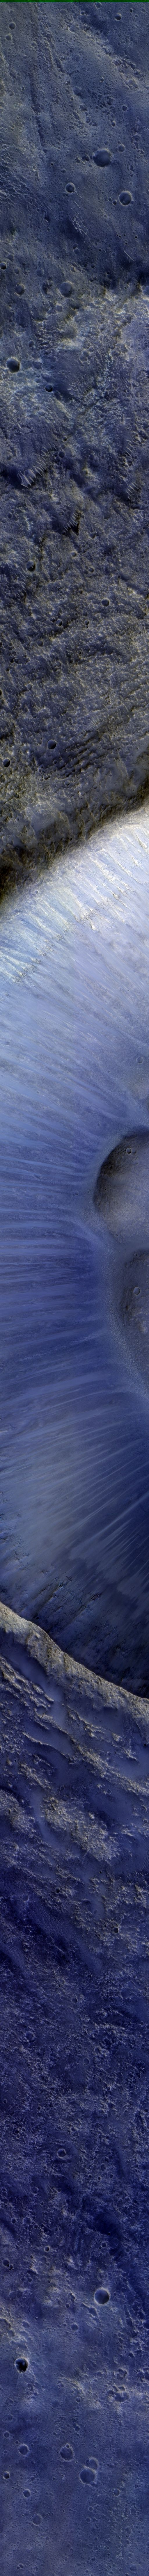 Martian Crater - image taken by HiRES (High Resolution Imaging Experiment) ~ Well-Preserved 8-Kilometer Diameter Impact Crater on surface of Mars. (NASA/JPL/University of Arizona)